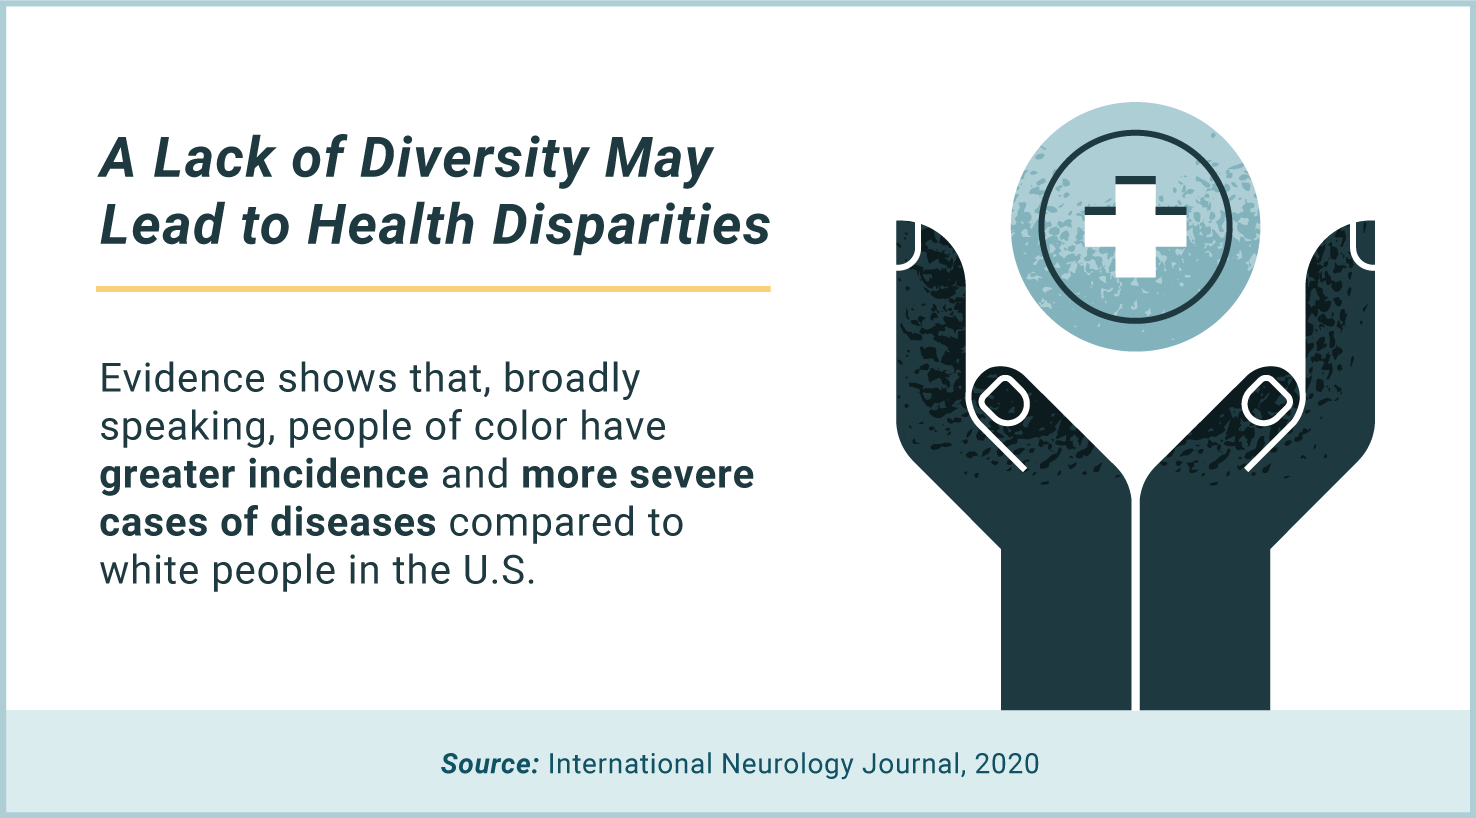 a lack of diversity may lead to health disparities